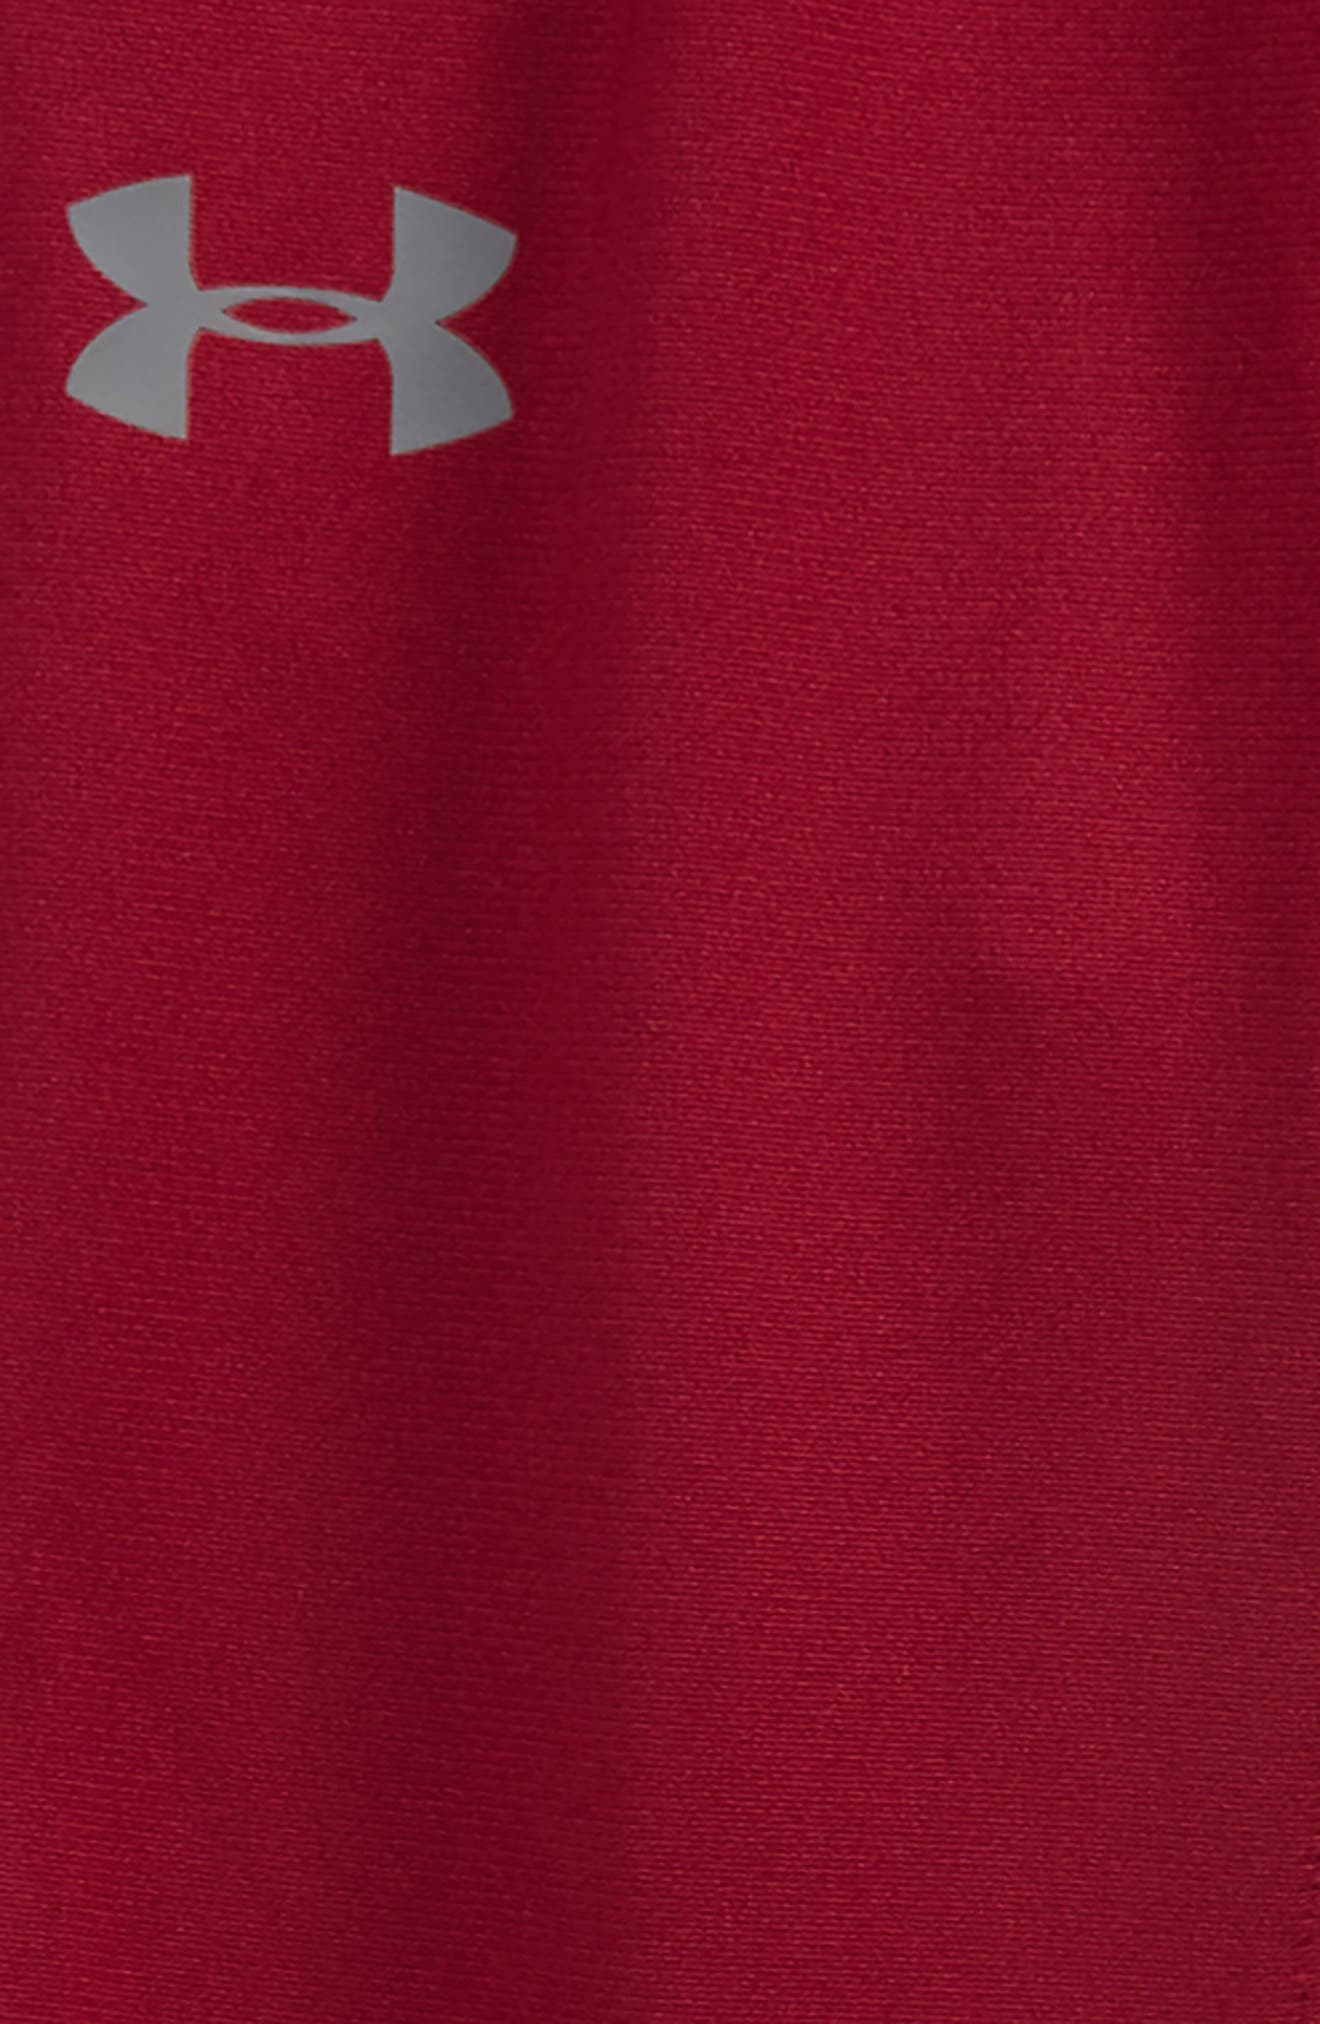 UNDER ARMOUR,                             'Pennant' Tapered Pants,                             Alternate thumbnail 2, color,                             003